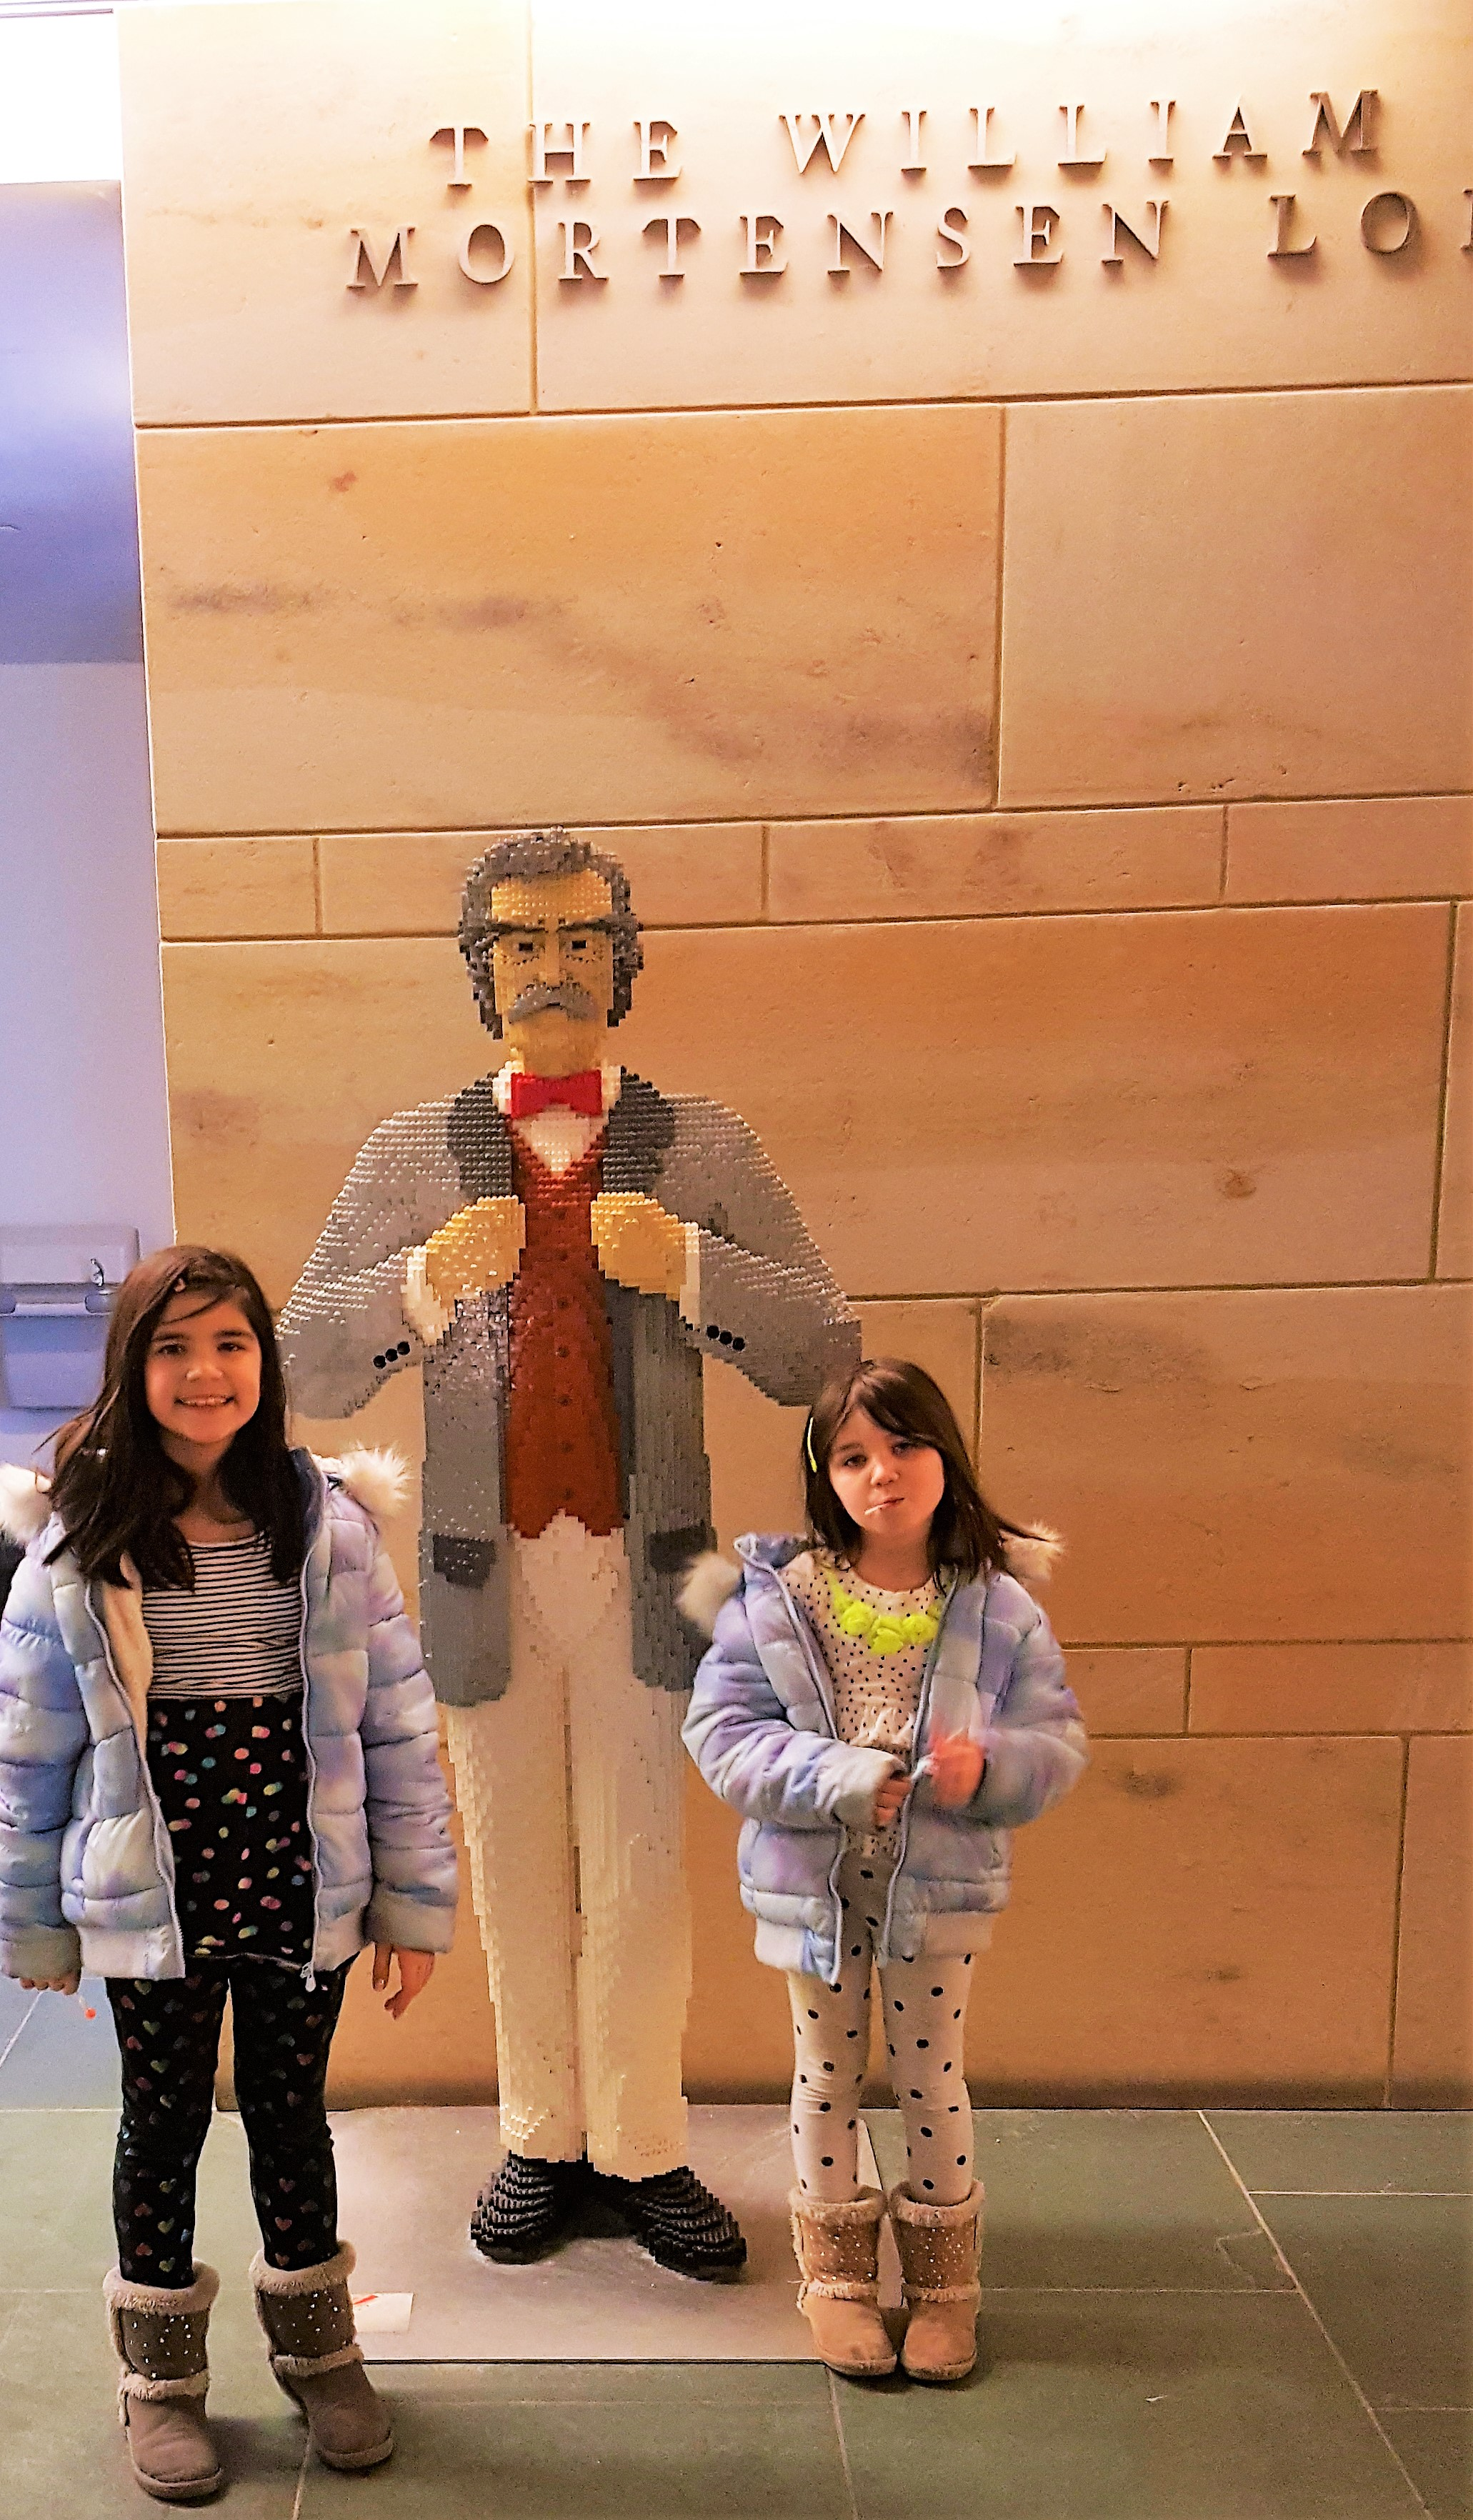 A Mark Twain, made entirely of Legos, greets the girls at the entrance.